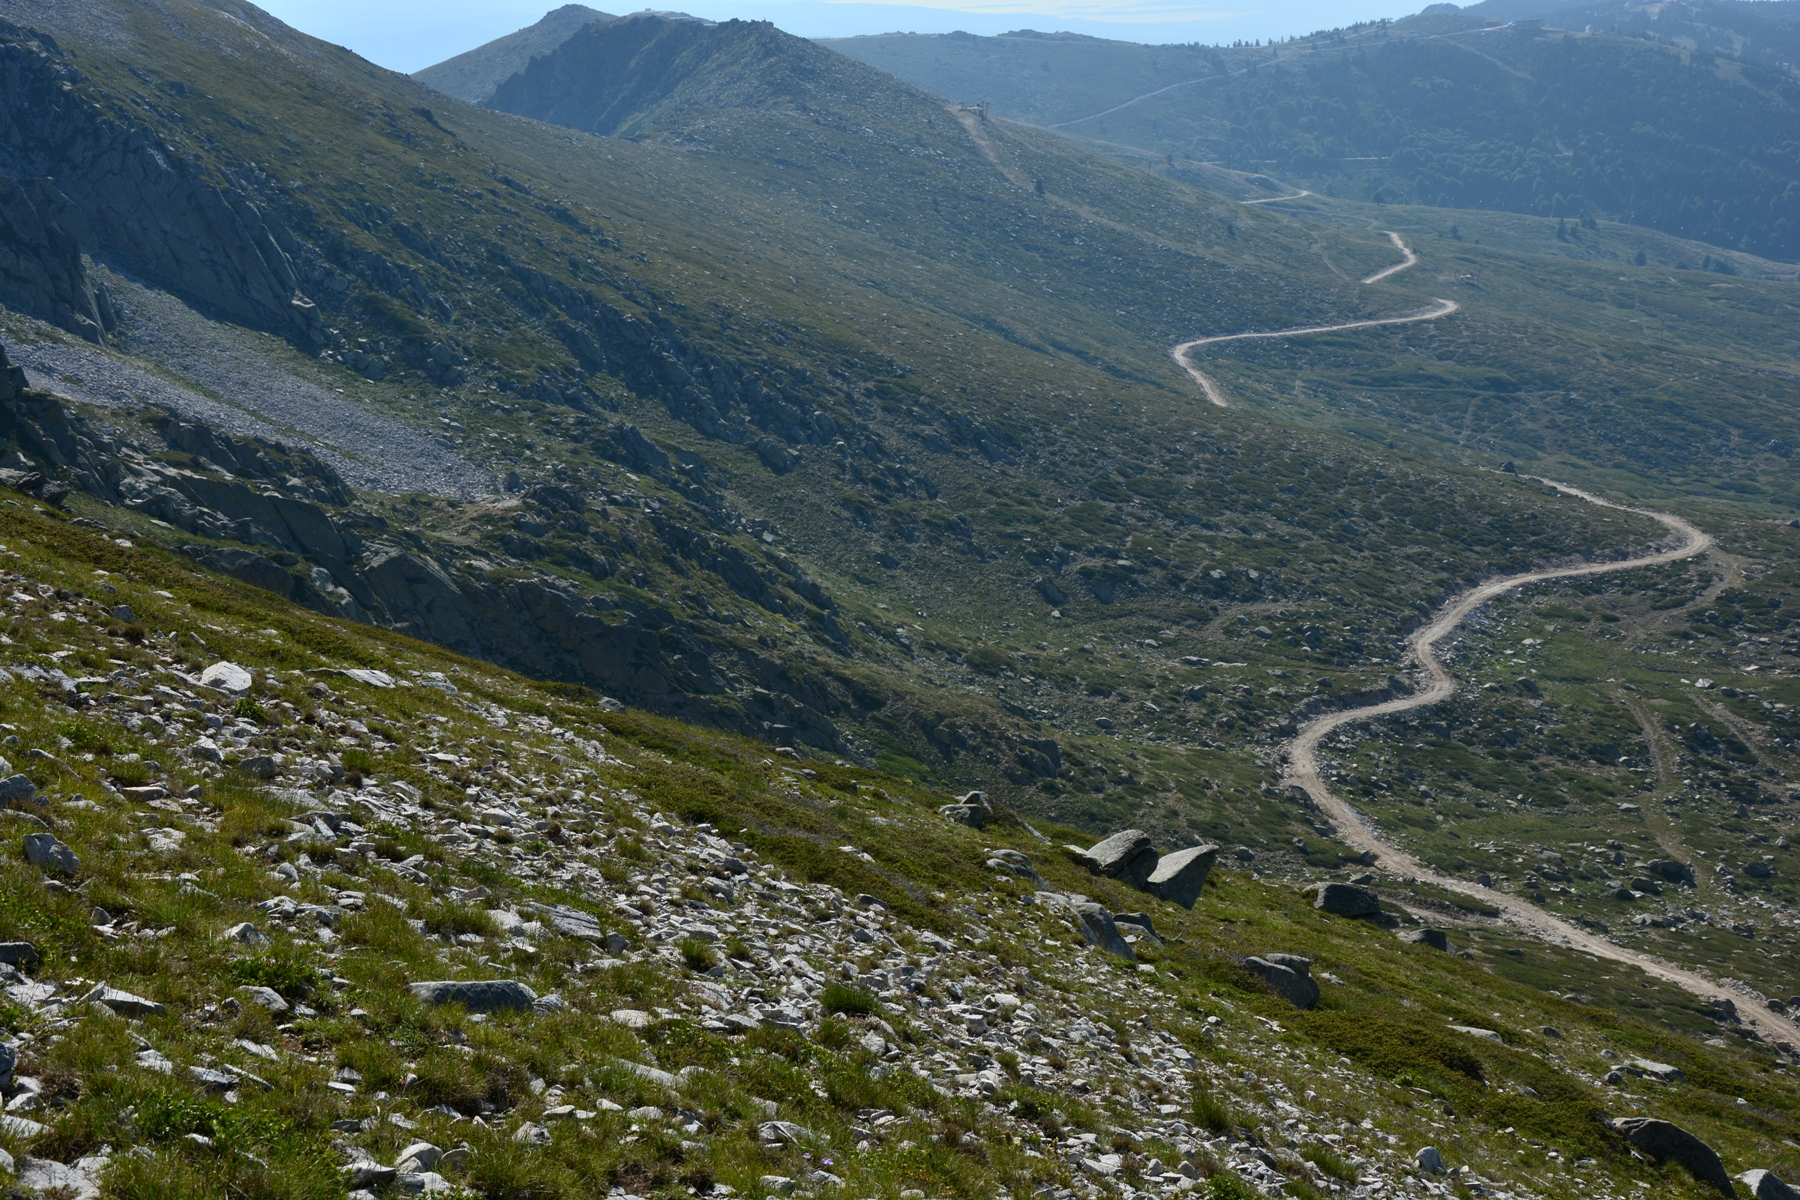 Winding road, Uludag mountains